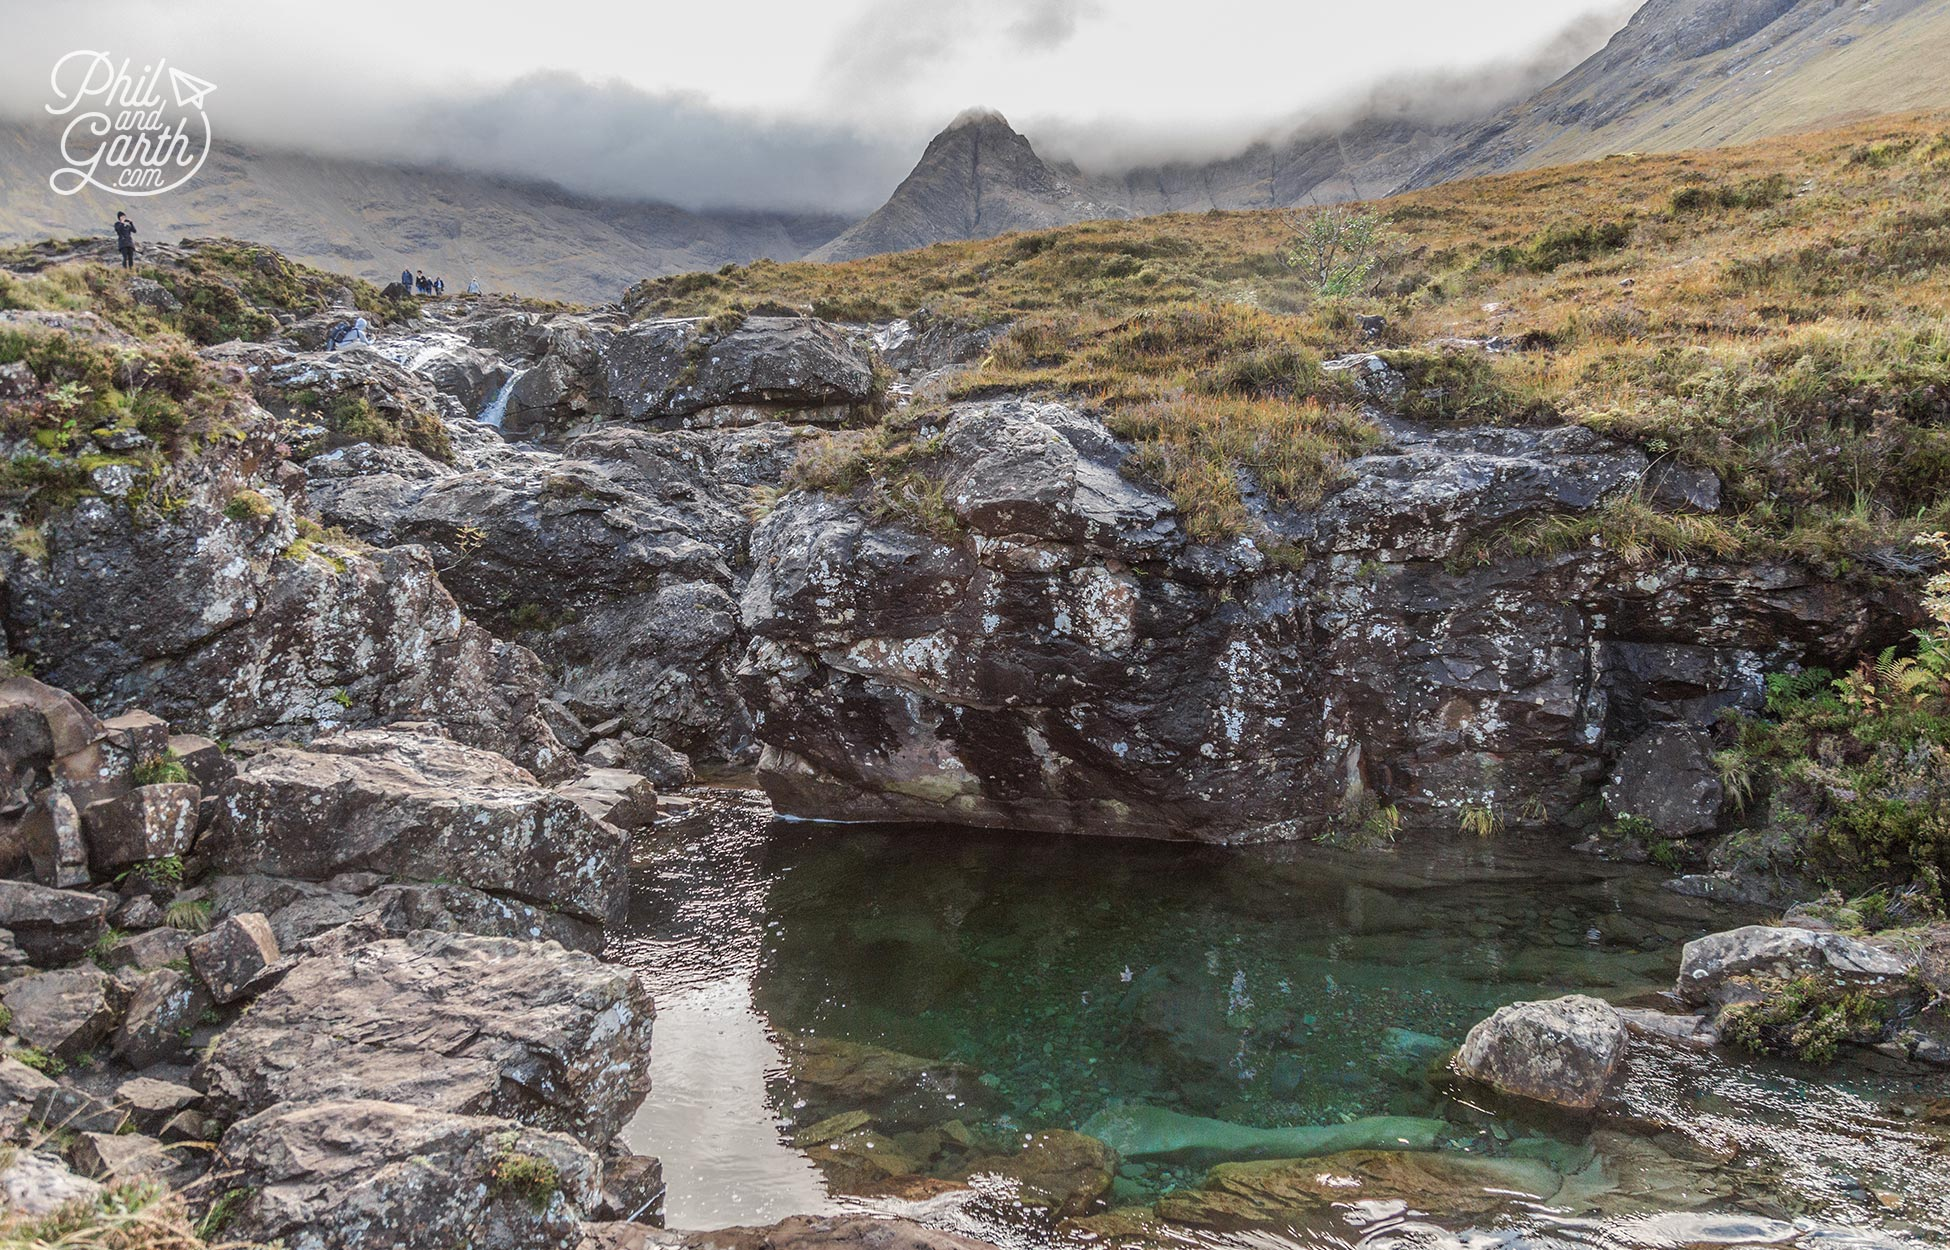 The mythical named Fairy Pools are incredibly atmospheric